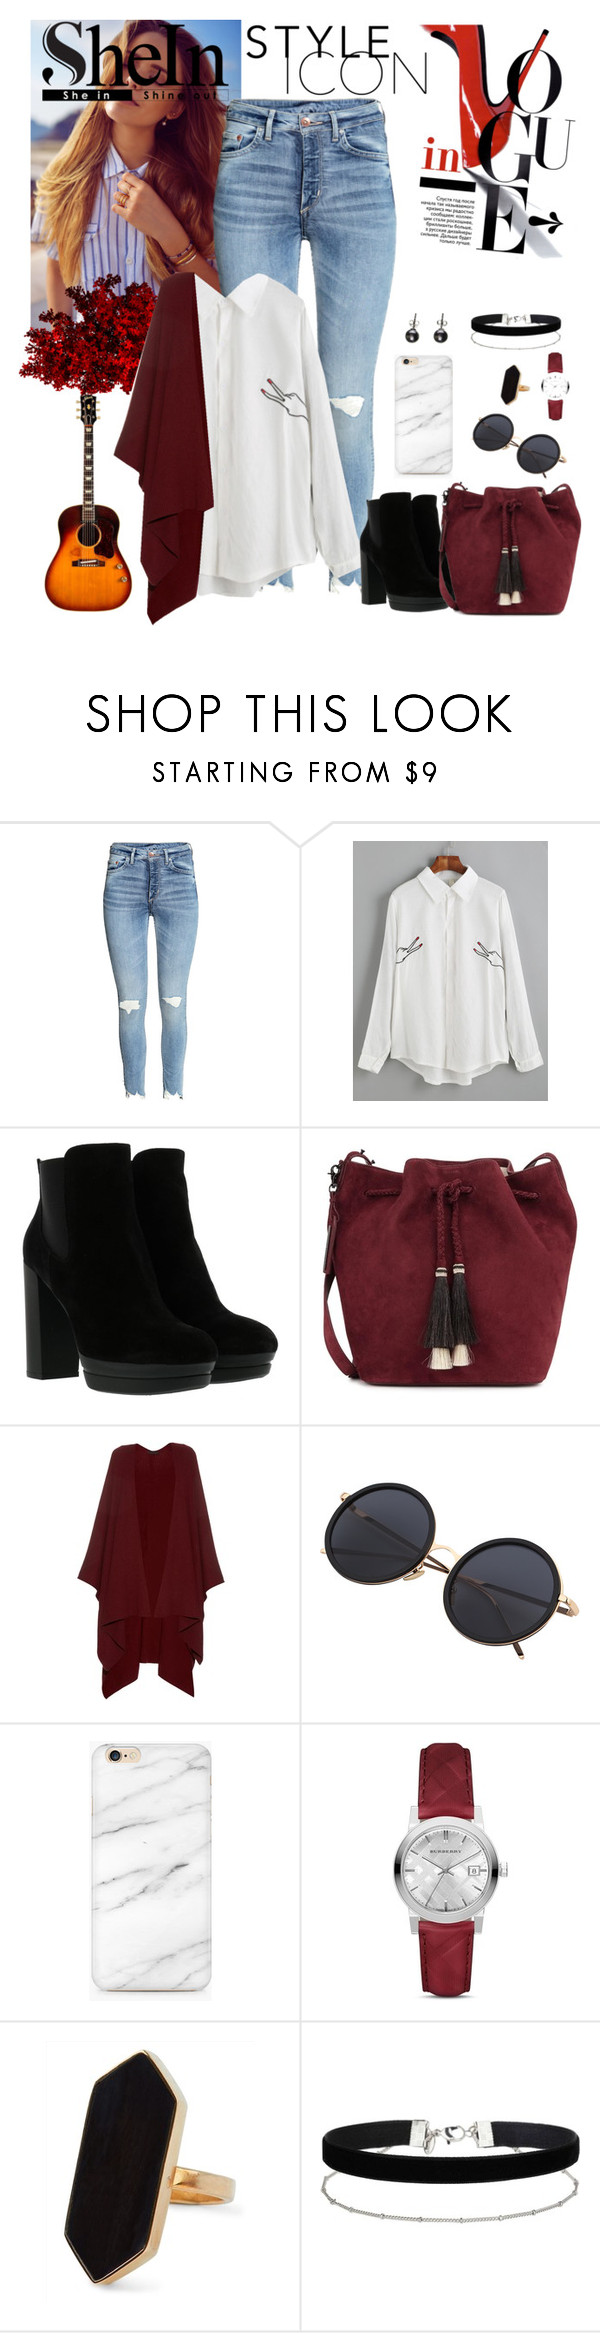 """""""Playful classics"""" by ersila15 ❤ liked on Polyvore featuring Hogan, Loeffler Randall, The Row, Burberry, Jaeger, Miss Selfridge and Black"""